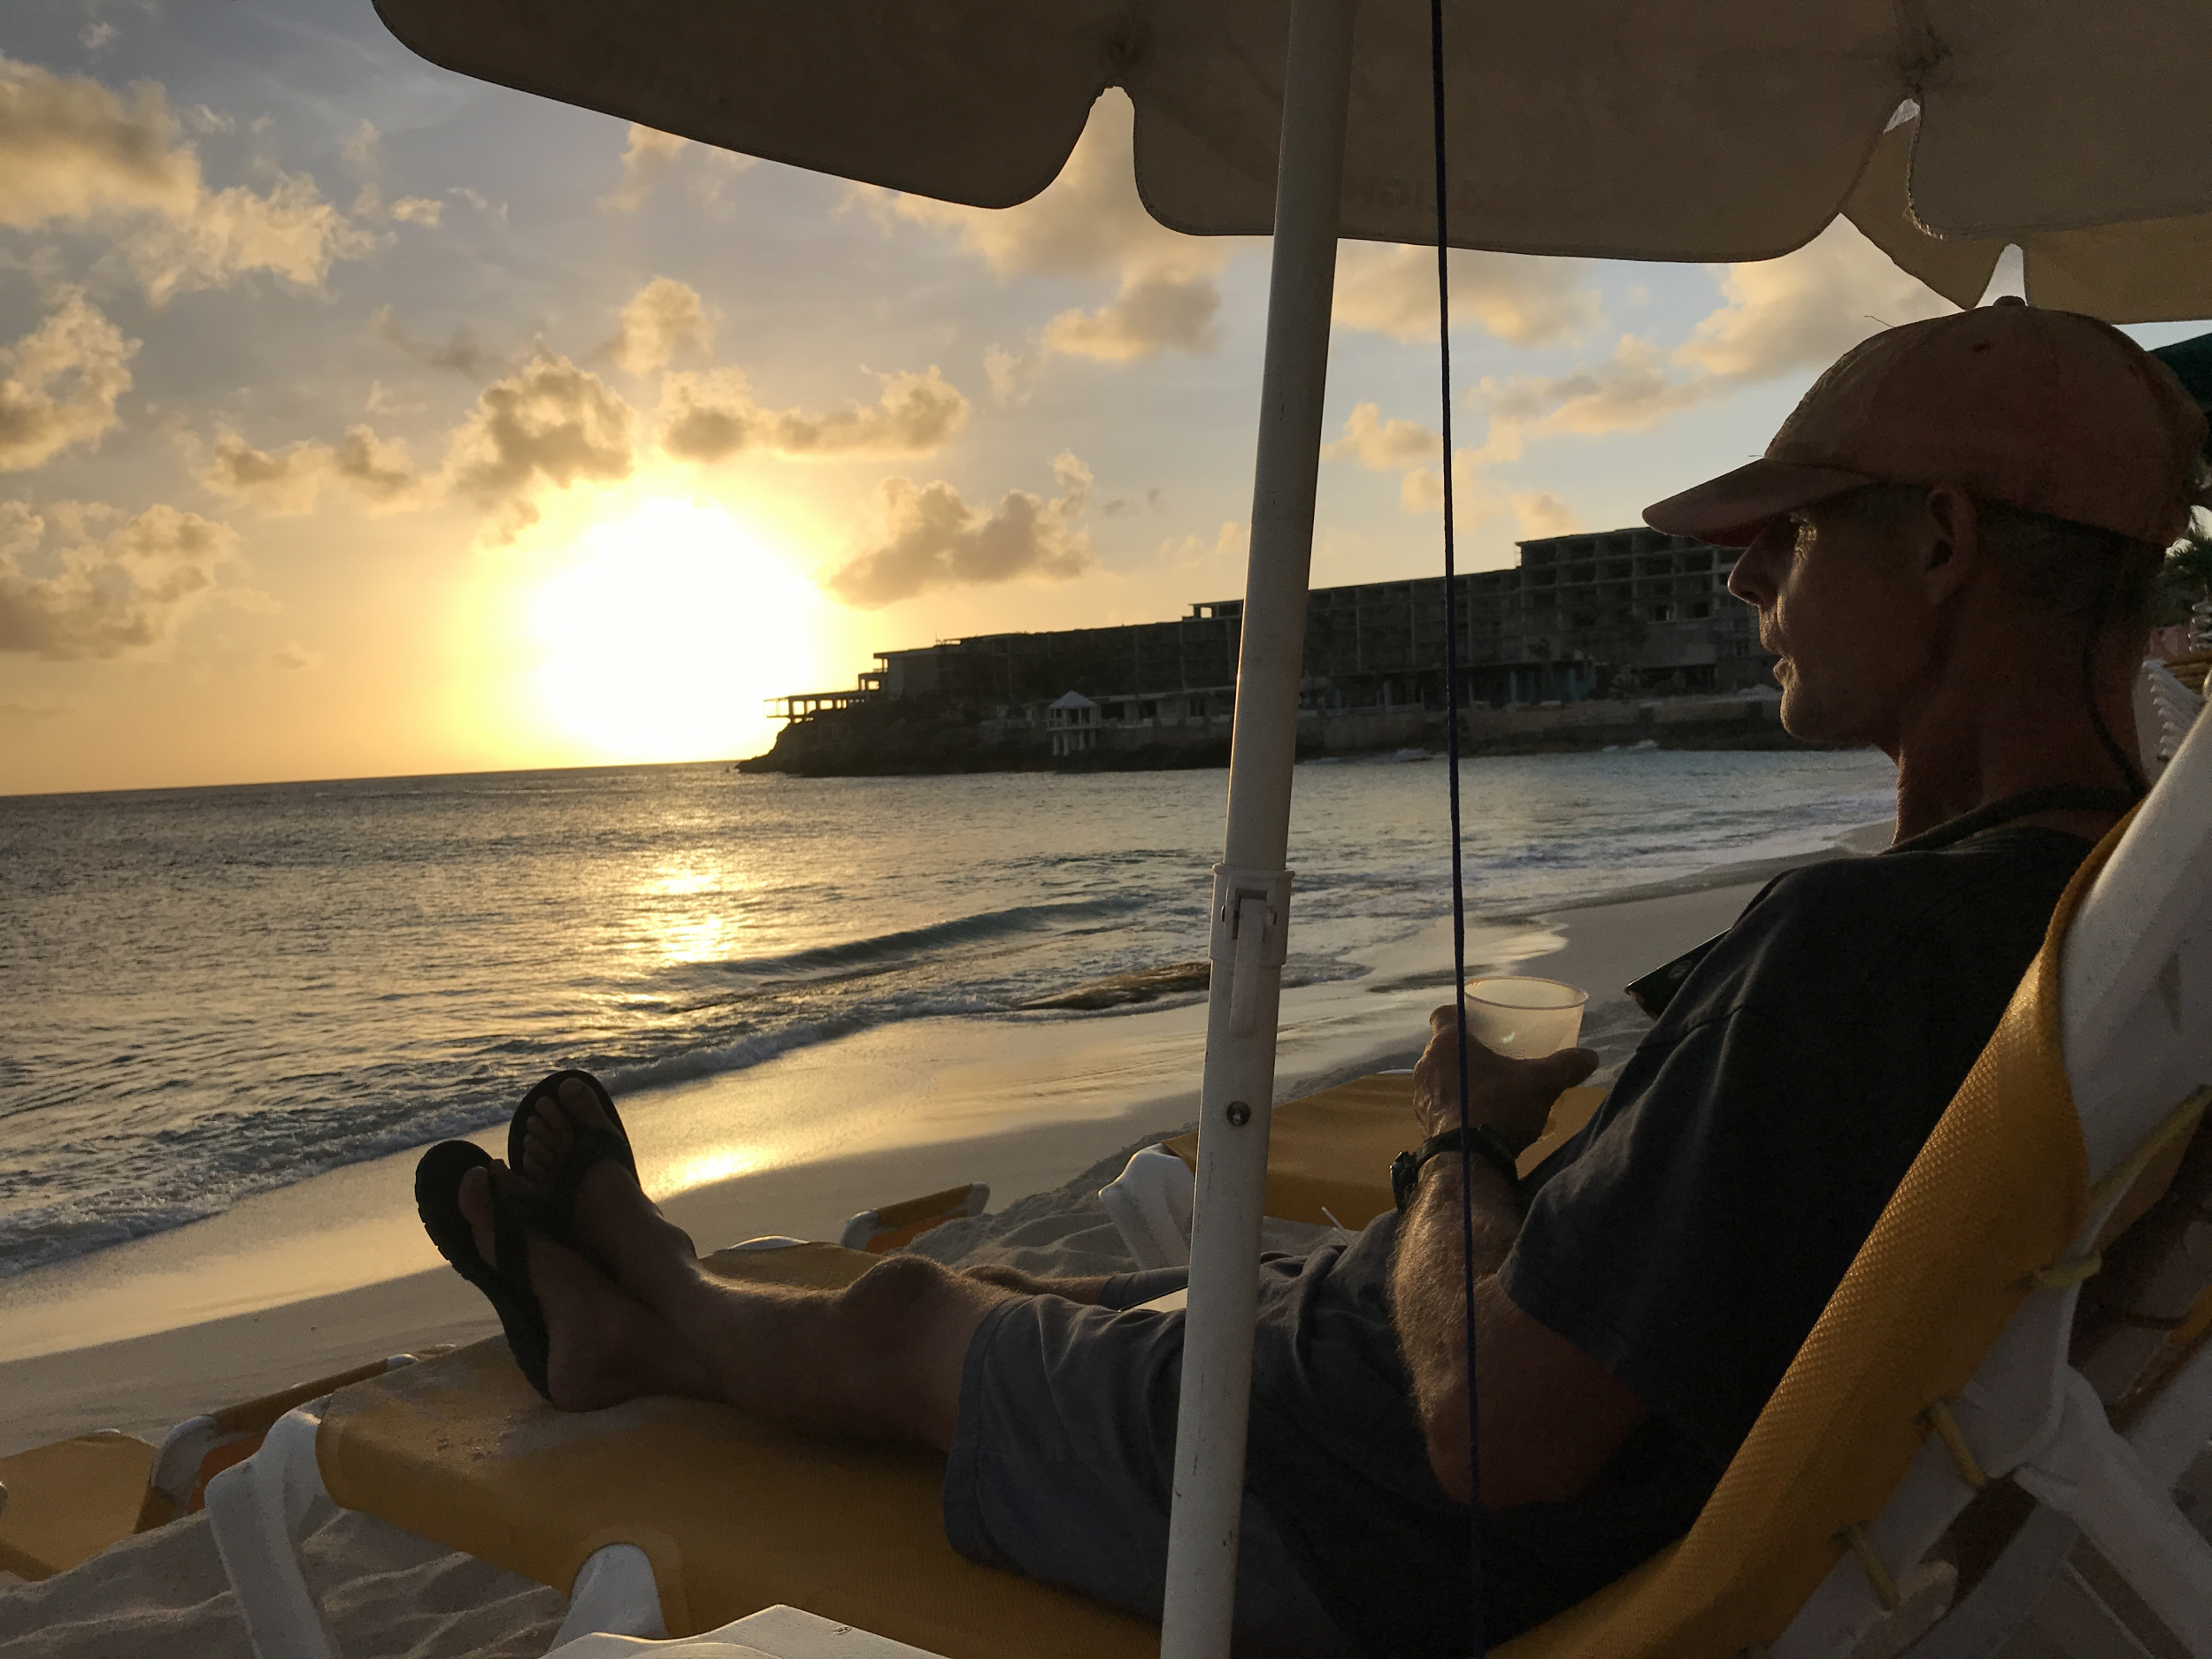 19. Rum punch at sunset